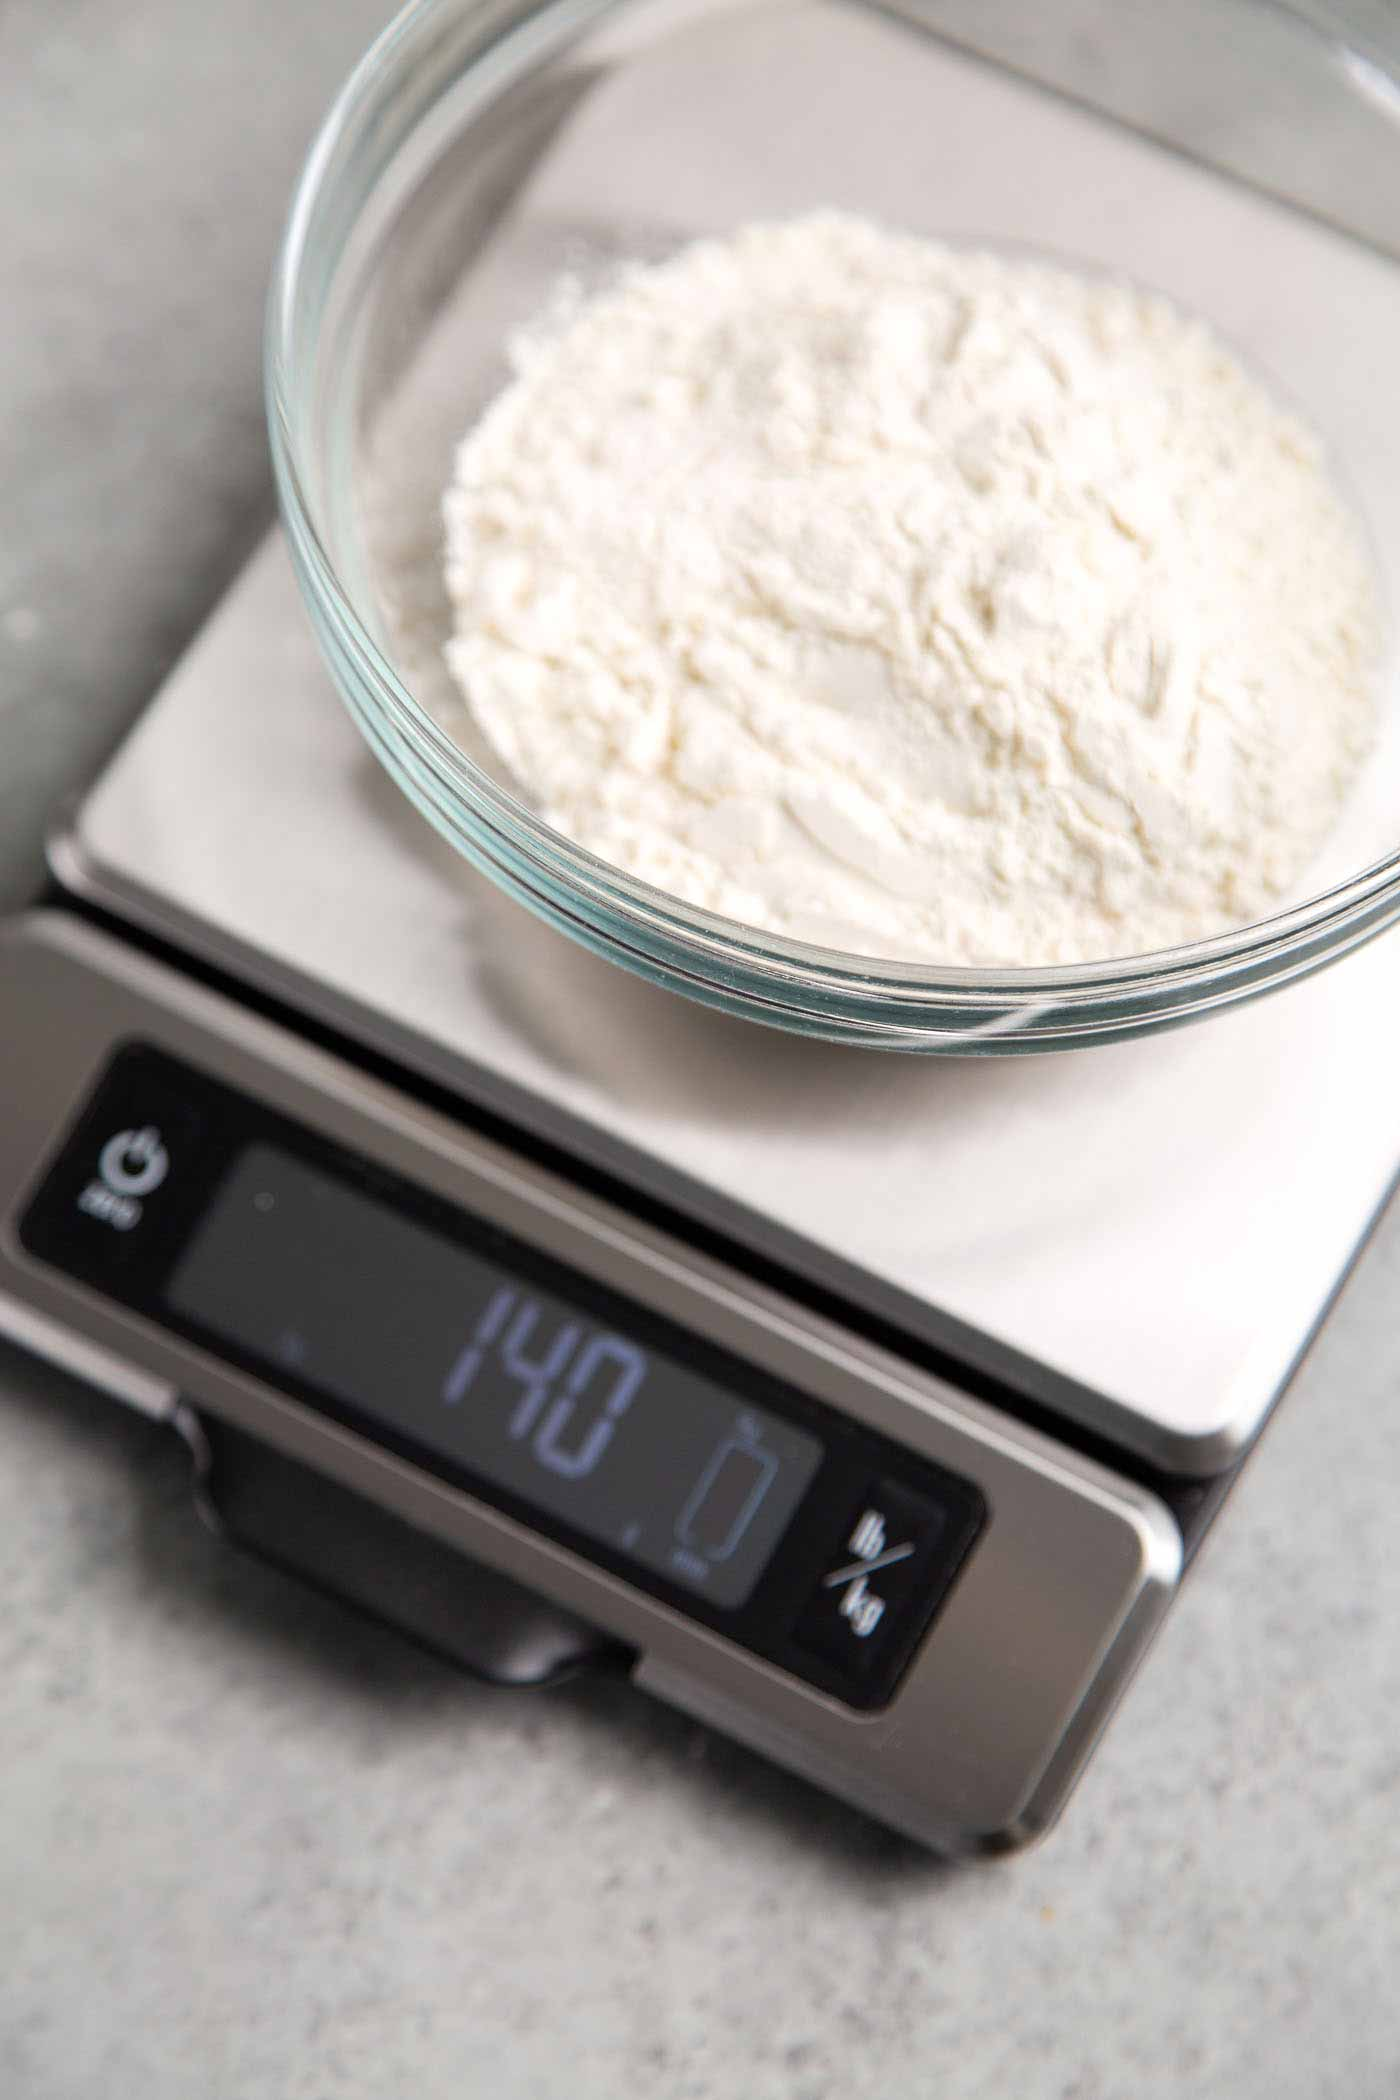 How to properly measure flour using kitchen scale